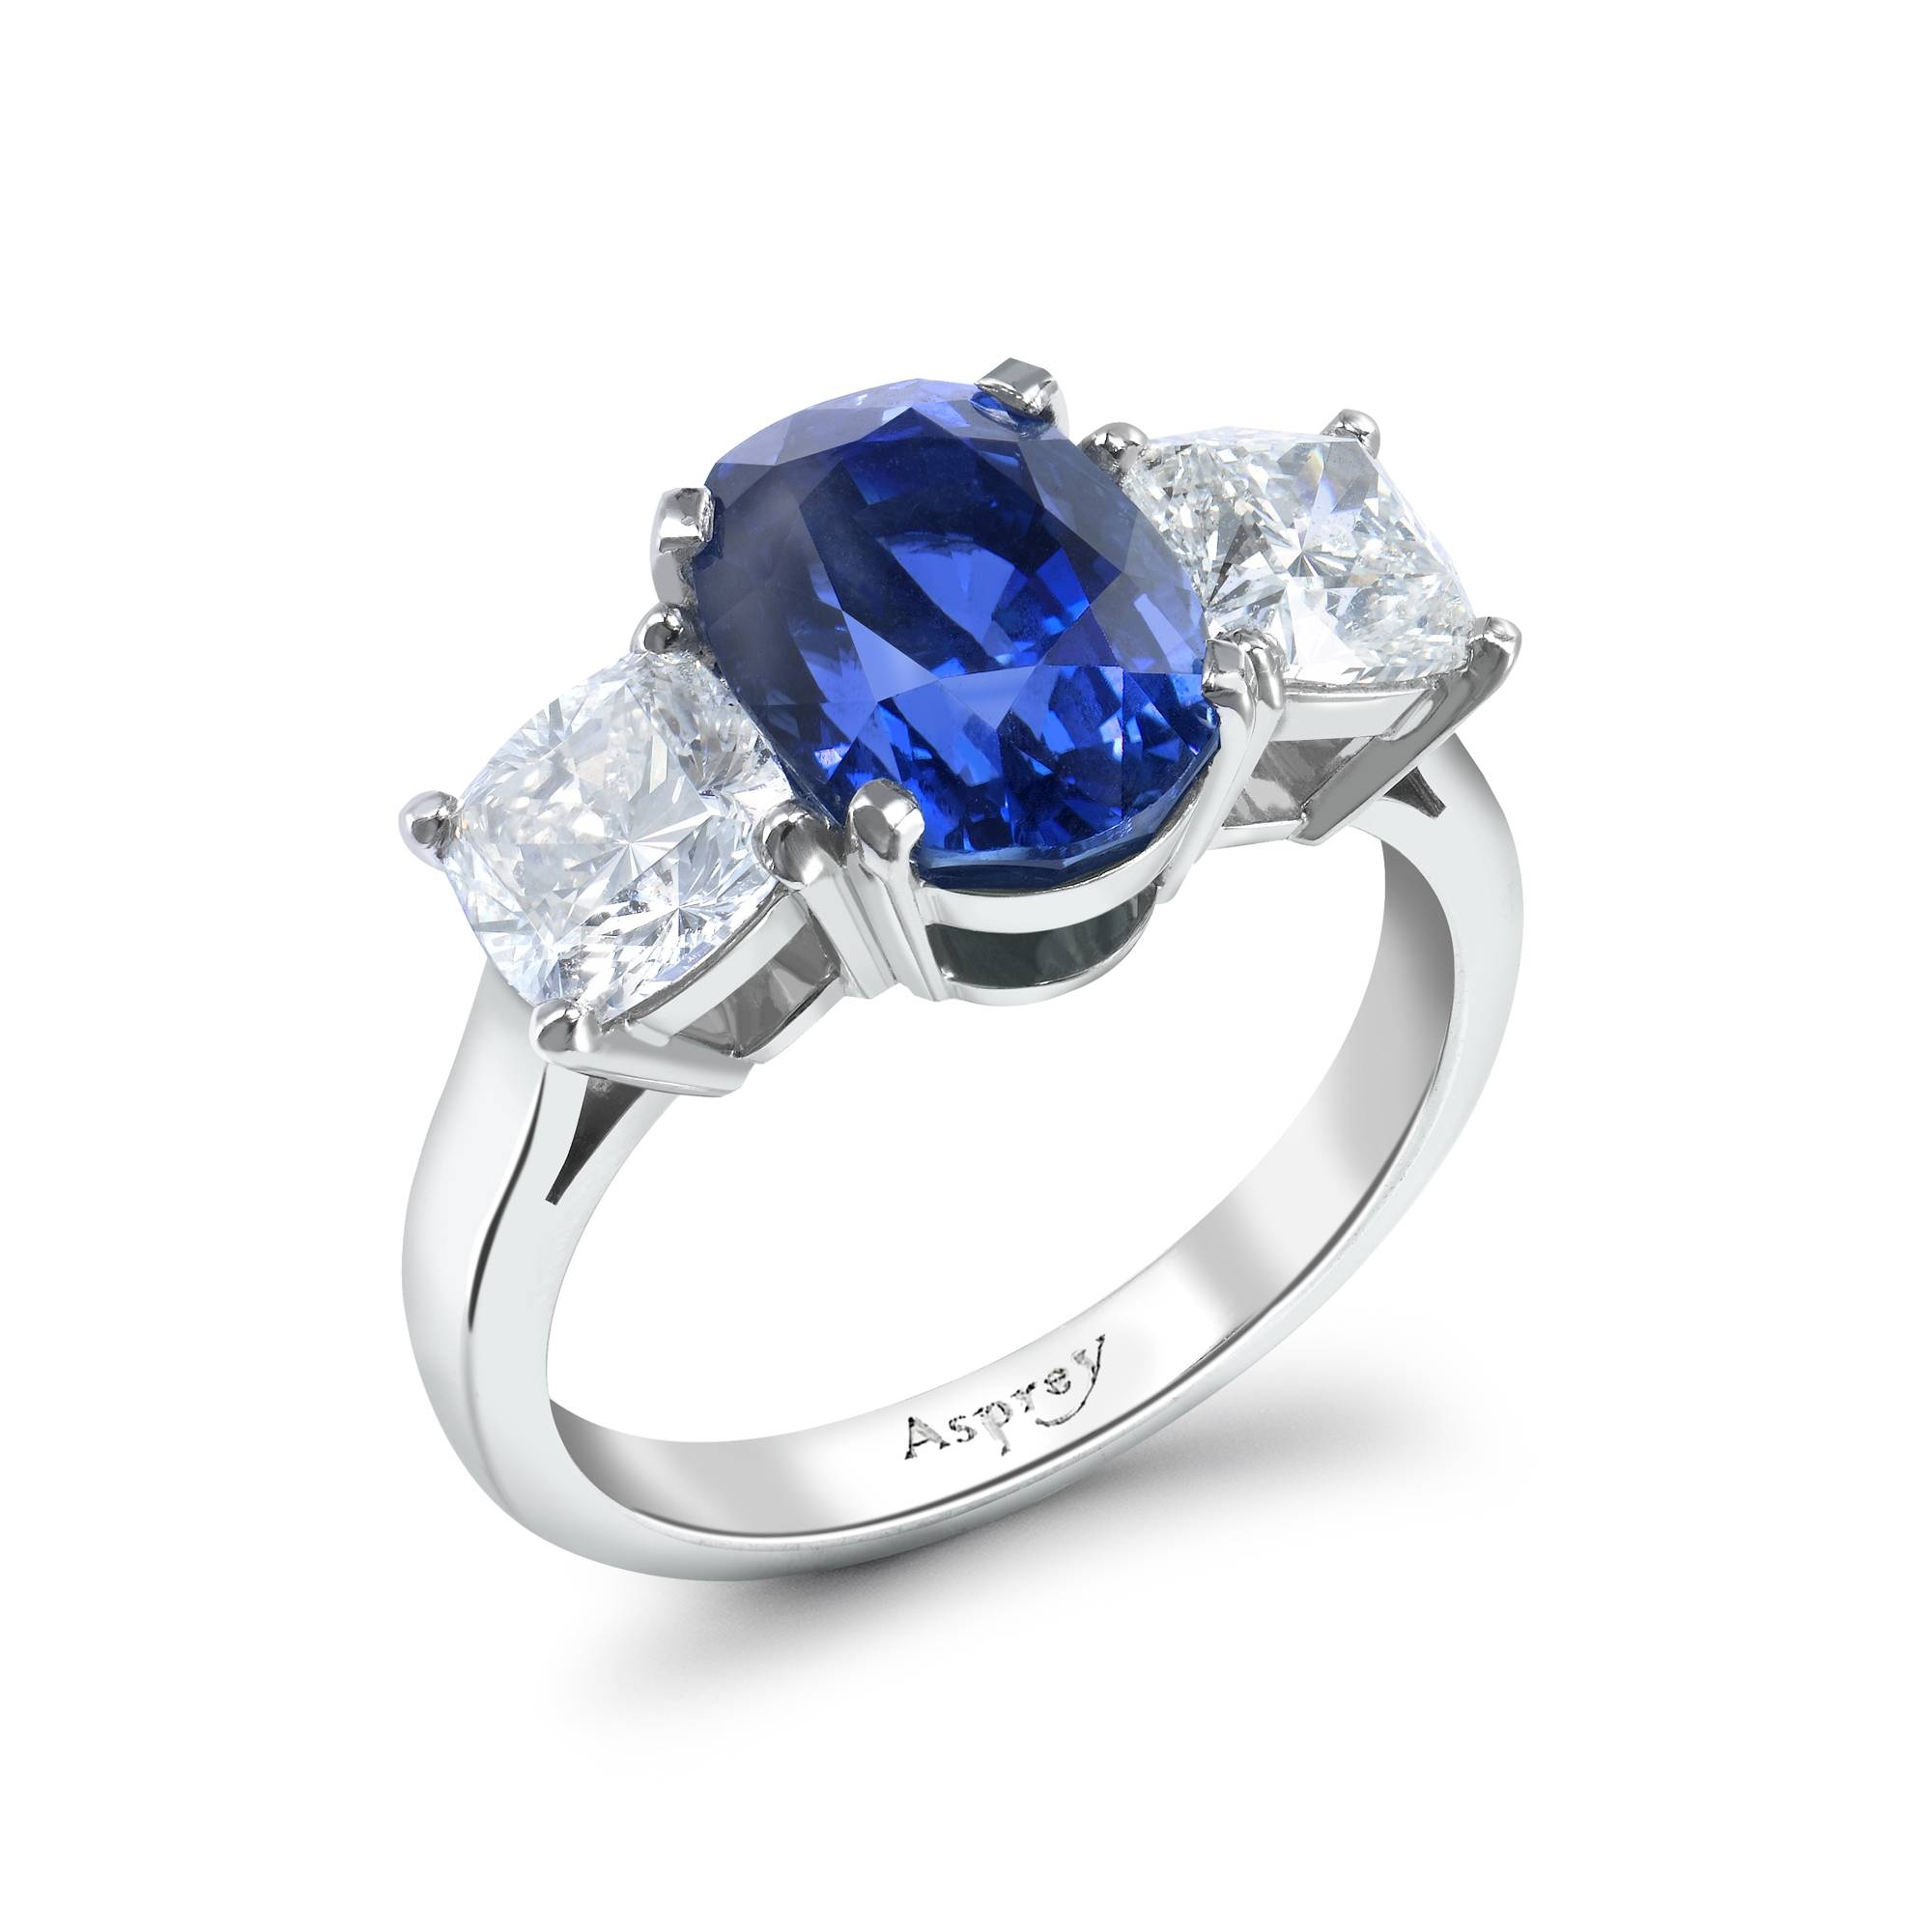 Engagement Rings : B Sbv Loveme Beautiful Engagement Ring Sapphire Inside Saphire Engagement Rings (View 3 of 15)